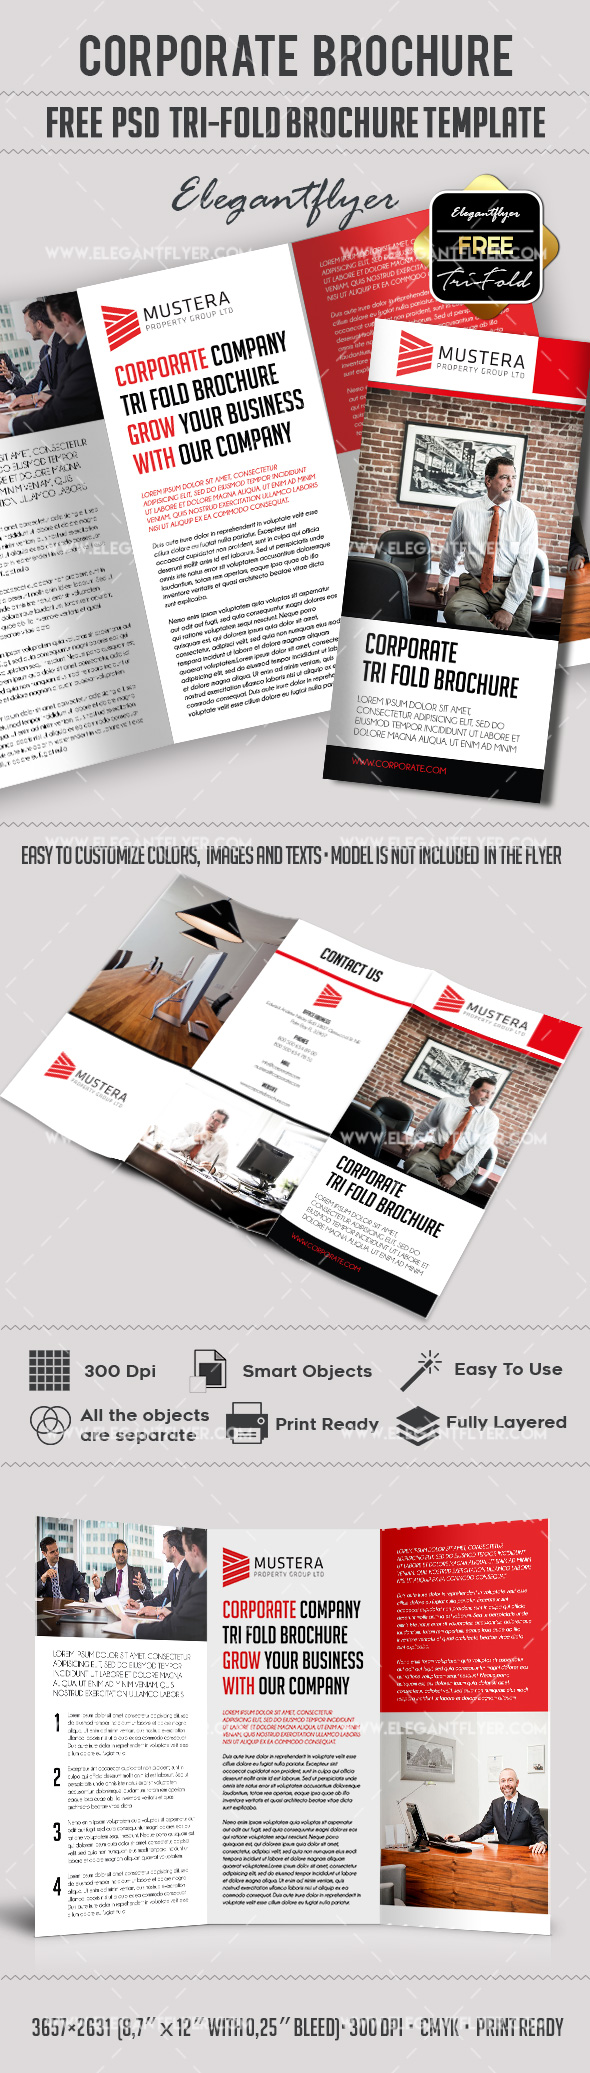 Corporate brochure template free by elegantflyer for 3 fold brochure template psd